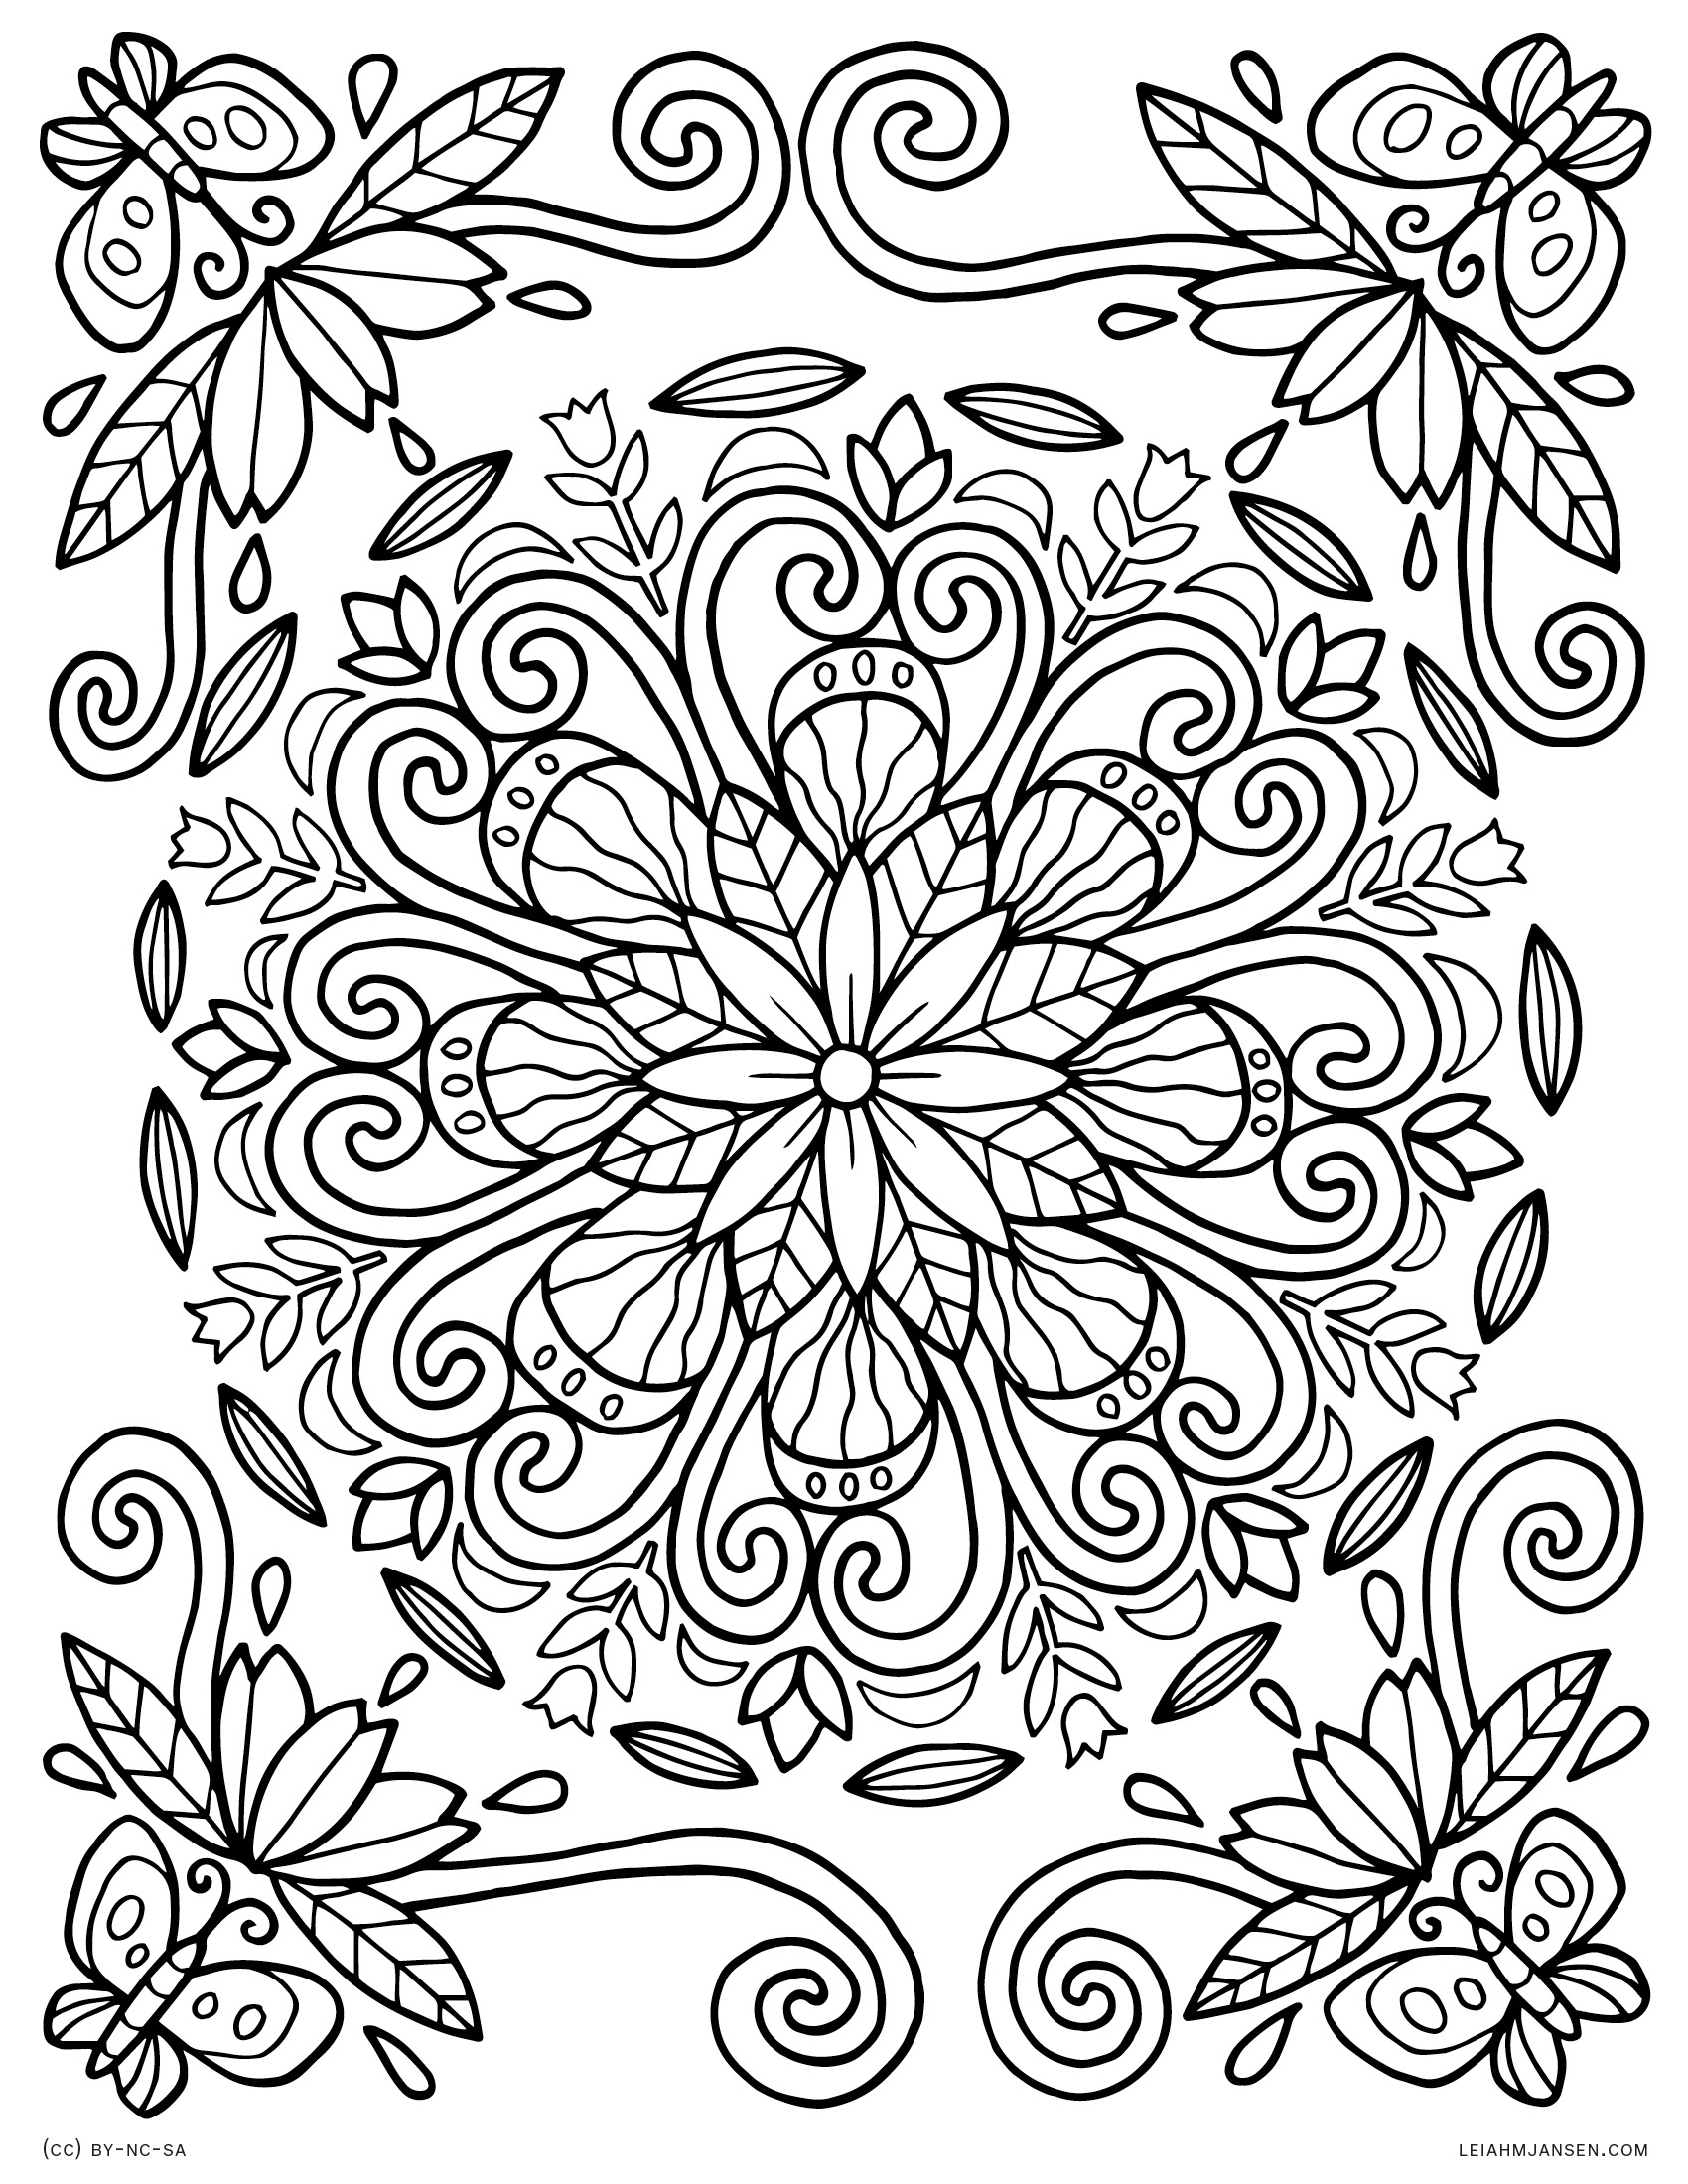 Pin by Jurgita Kat on vaikam | Mandala coloring pages, Mandala ... | 2200x1700